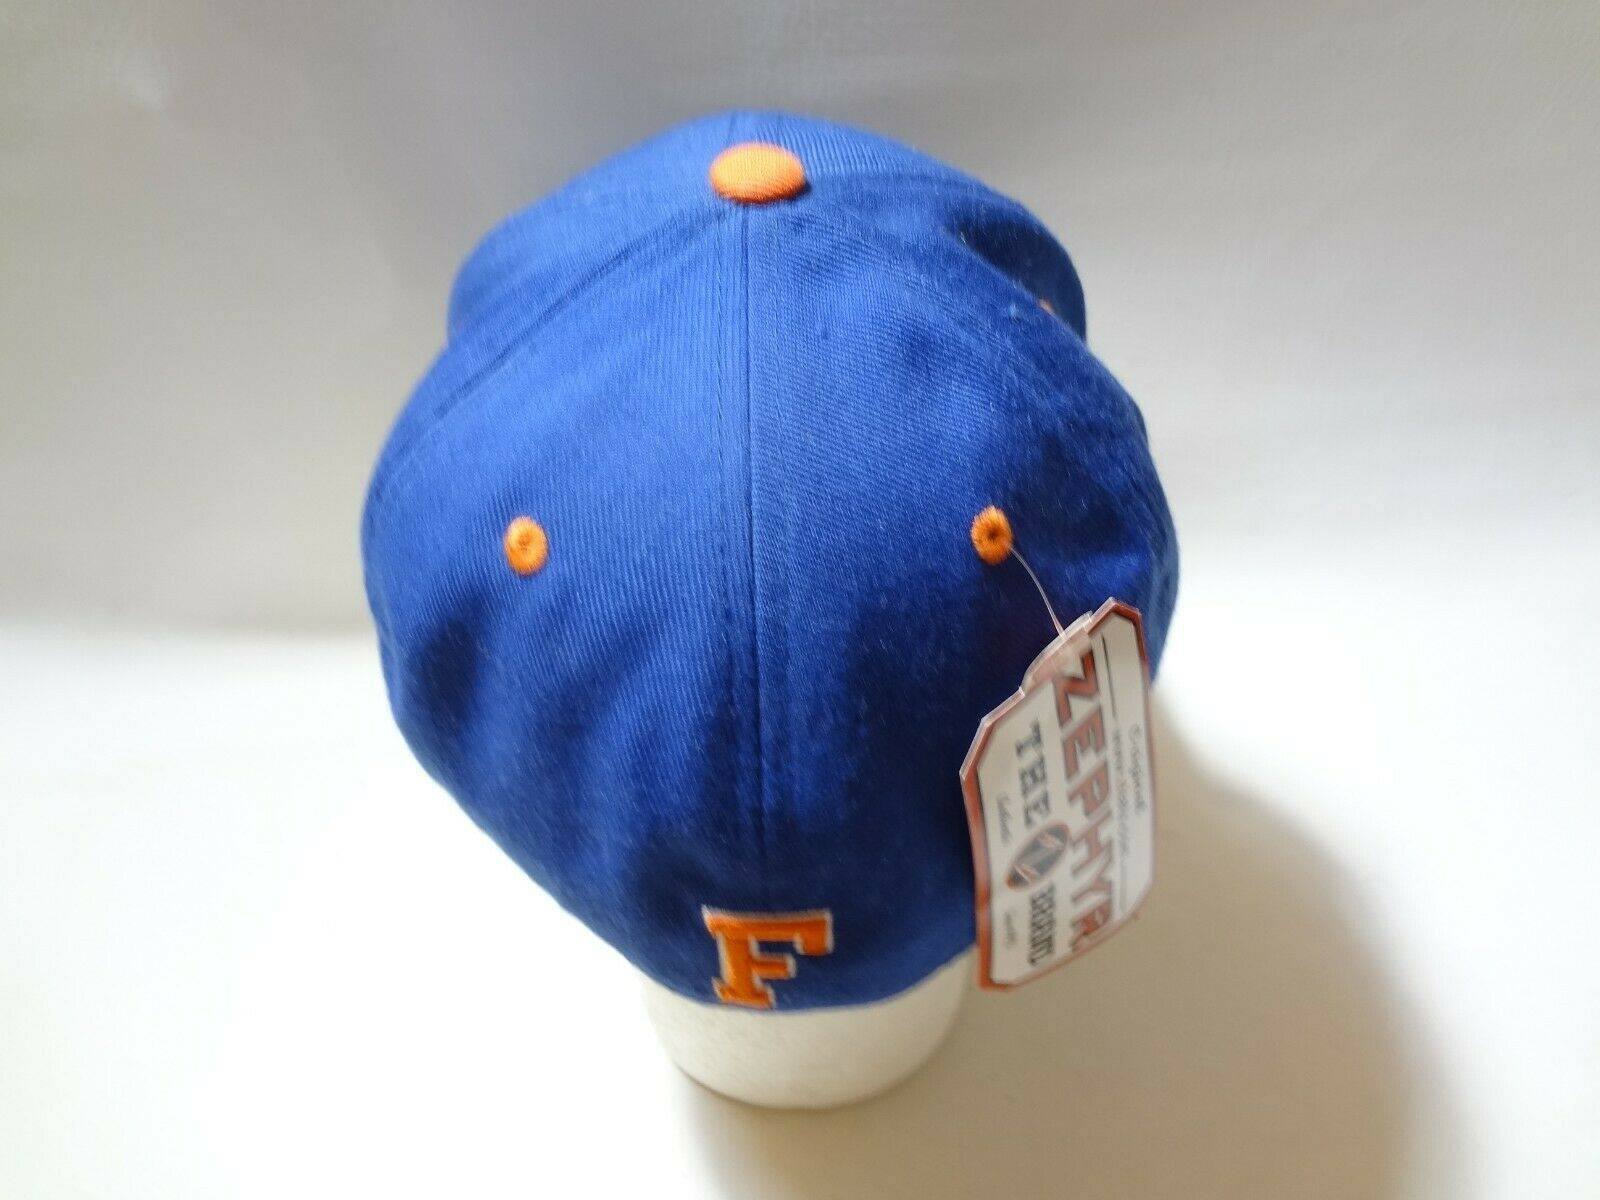 New University Of Florida UF Zephyr Fitted Cap Hat 7 1/2 Z brand College  image 6